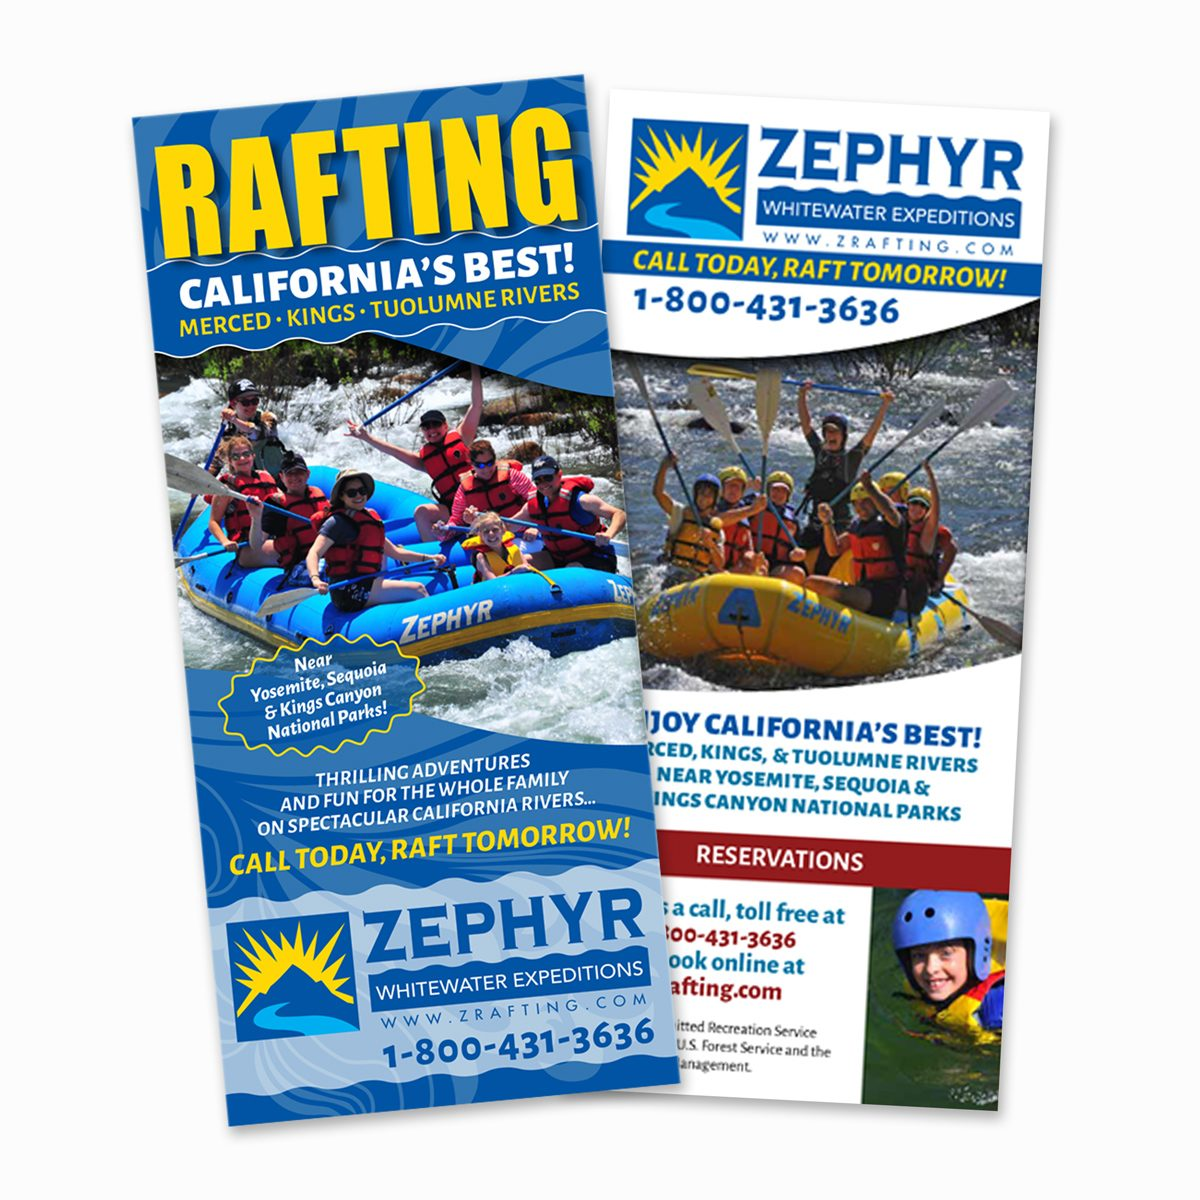 Zephyr Whitewater 5-panel rack card front and back